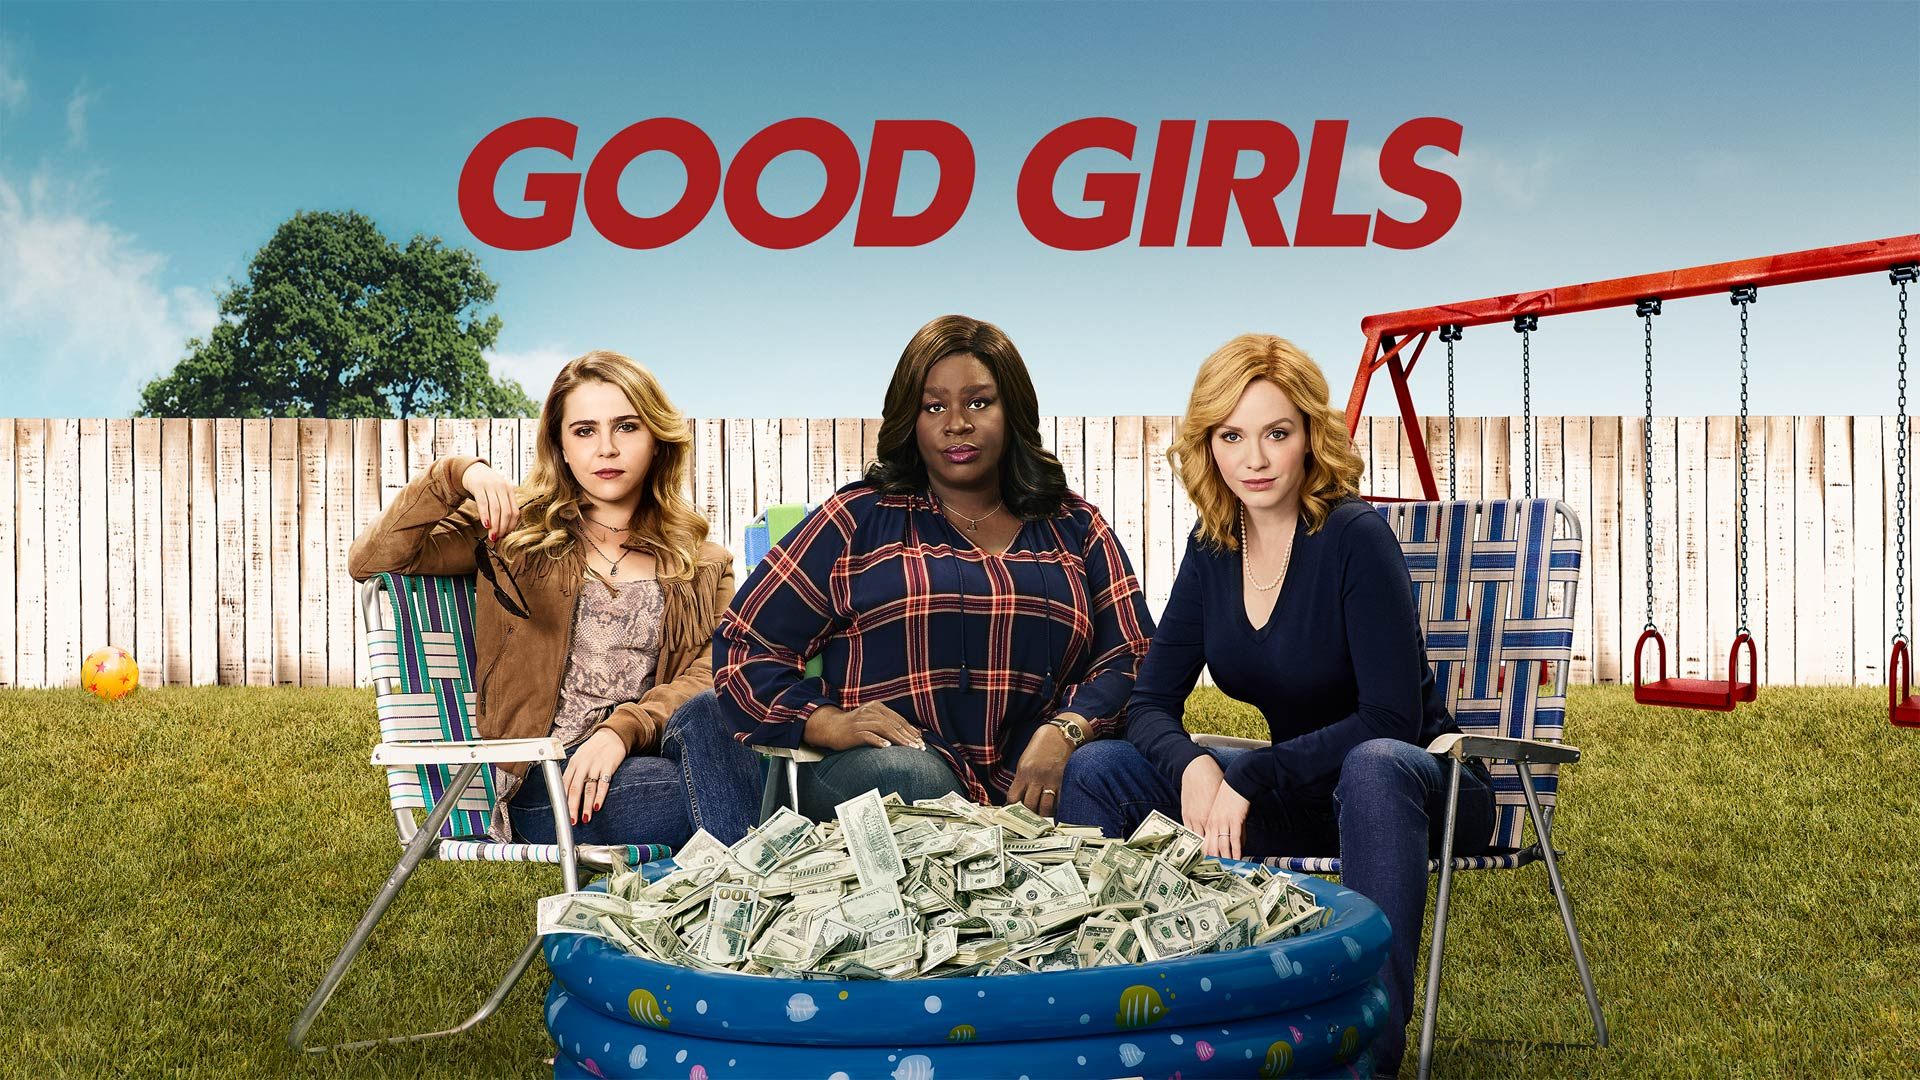 NBC.com-GoodGirls-AllShowsImage-1920x1080